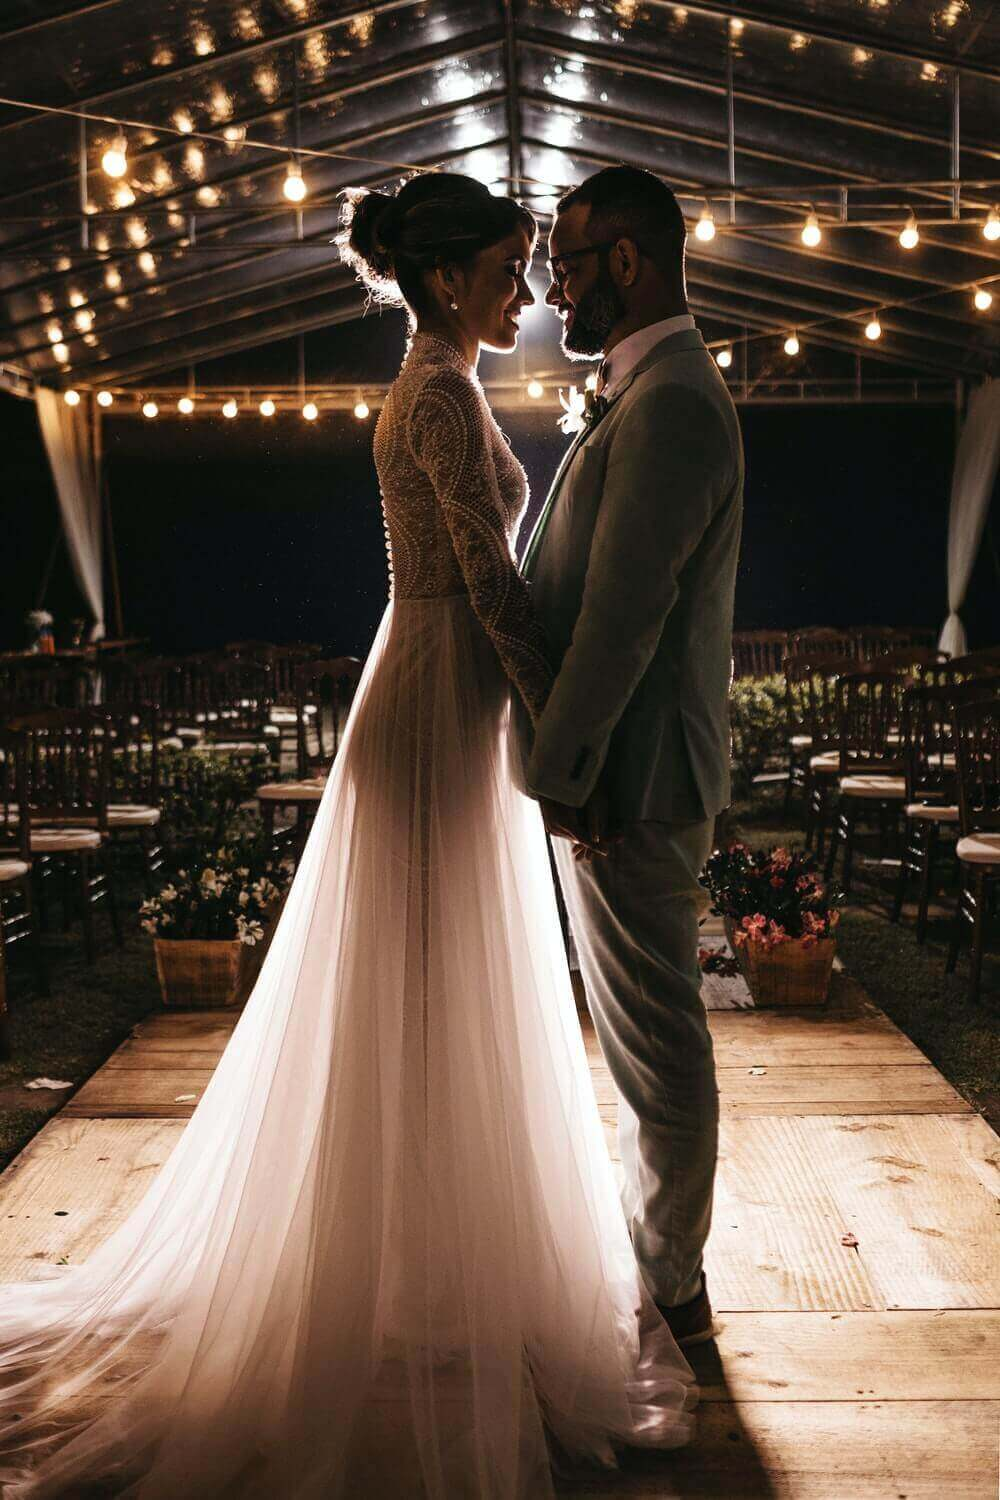 Couple having an intimate moment in their wedding hall.